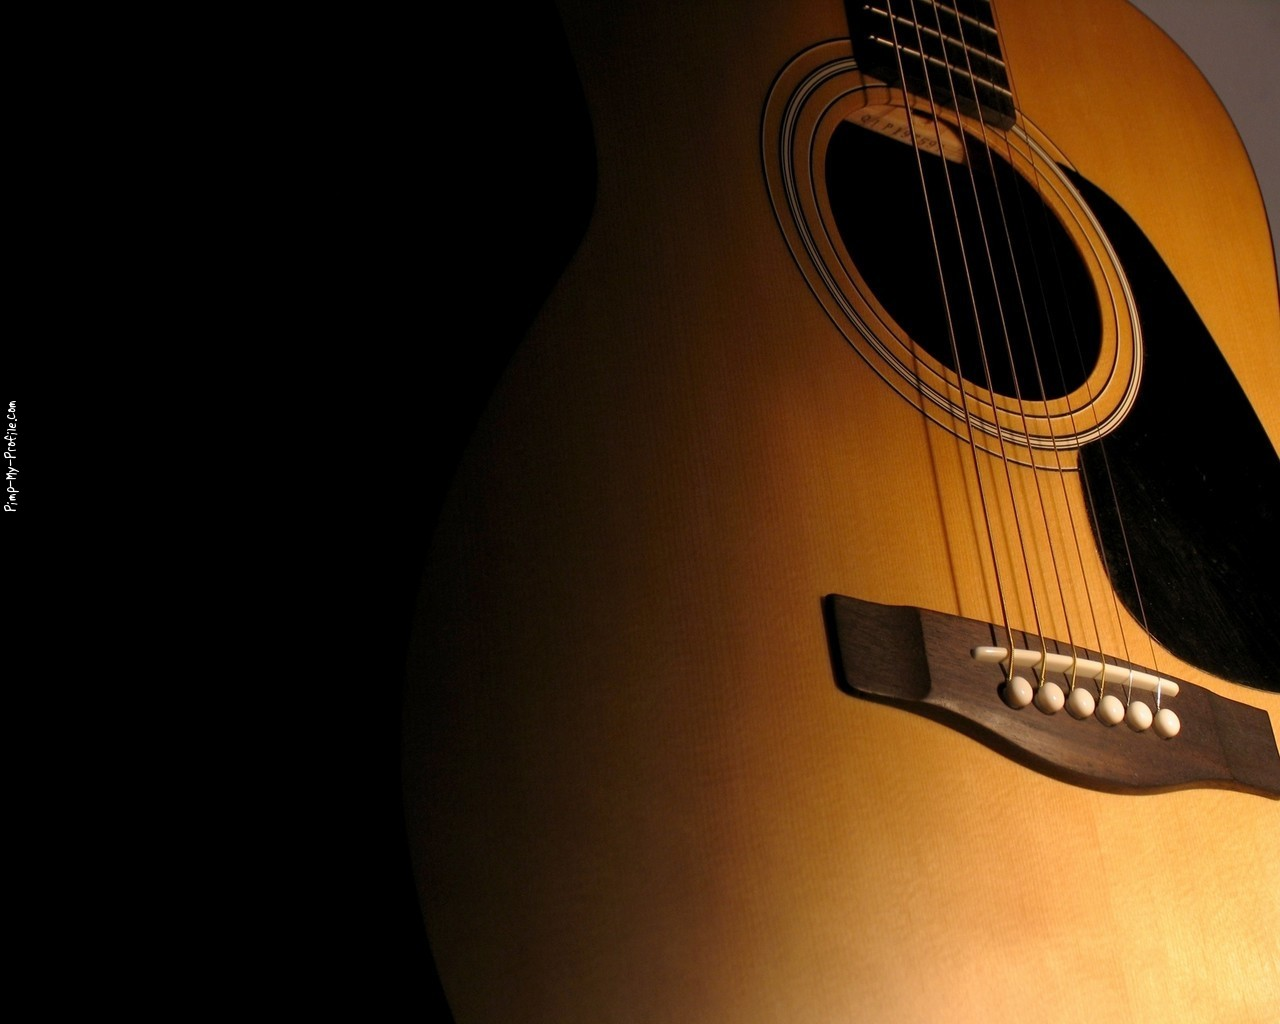 Acoustic Guitar Facebook Timeline Cover Backgrounds